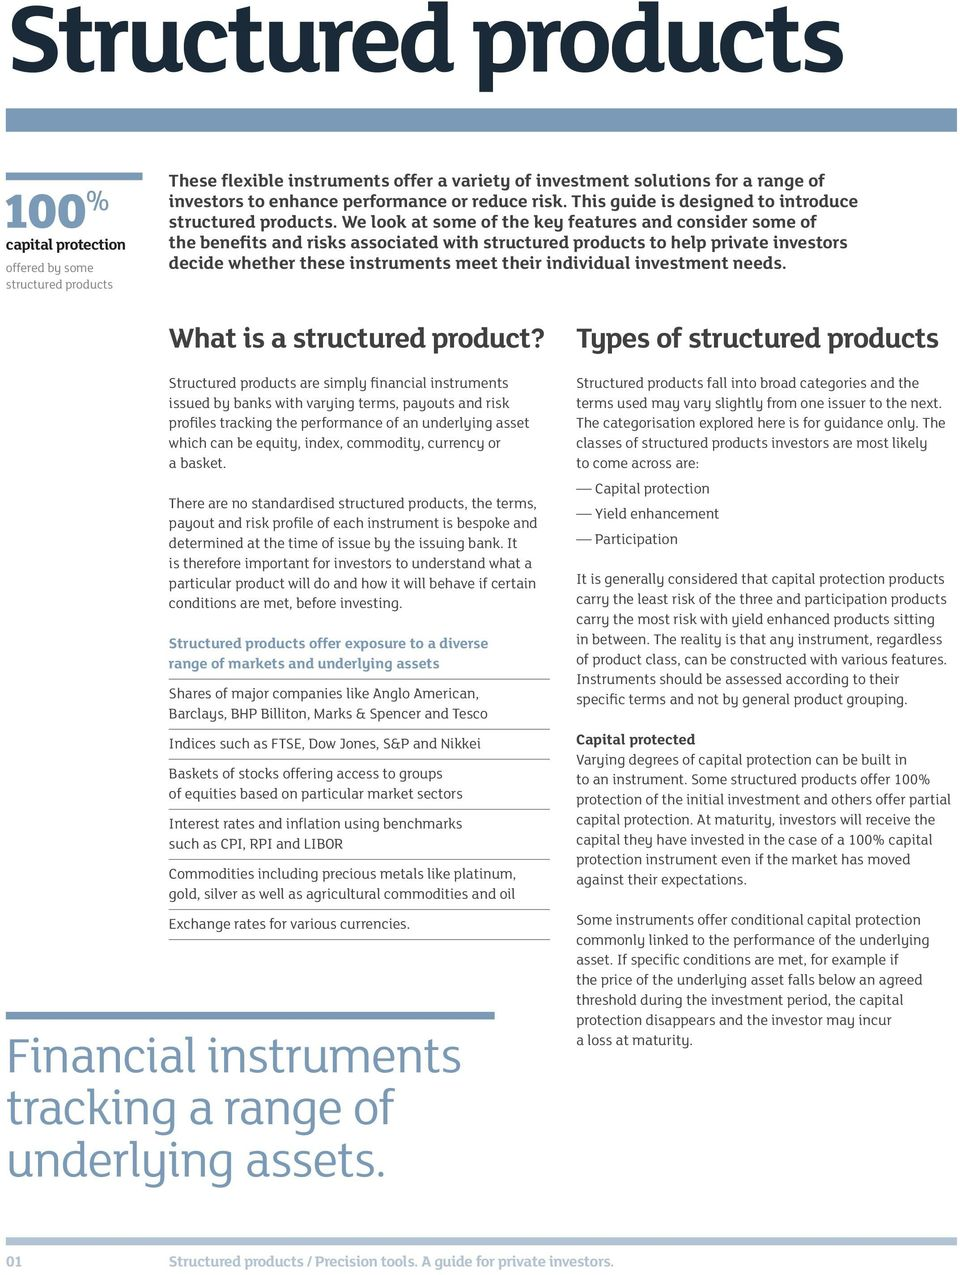 We look at some of the key features and consider some of the benefits and risks associated with structured products to help private investors decide whether these instruments meet their individual